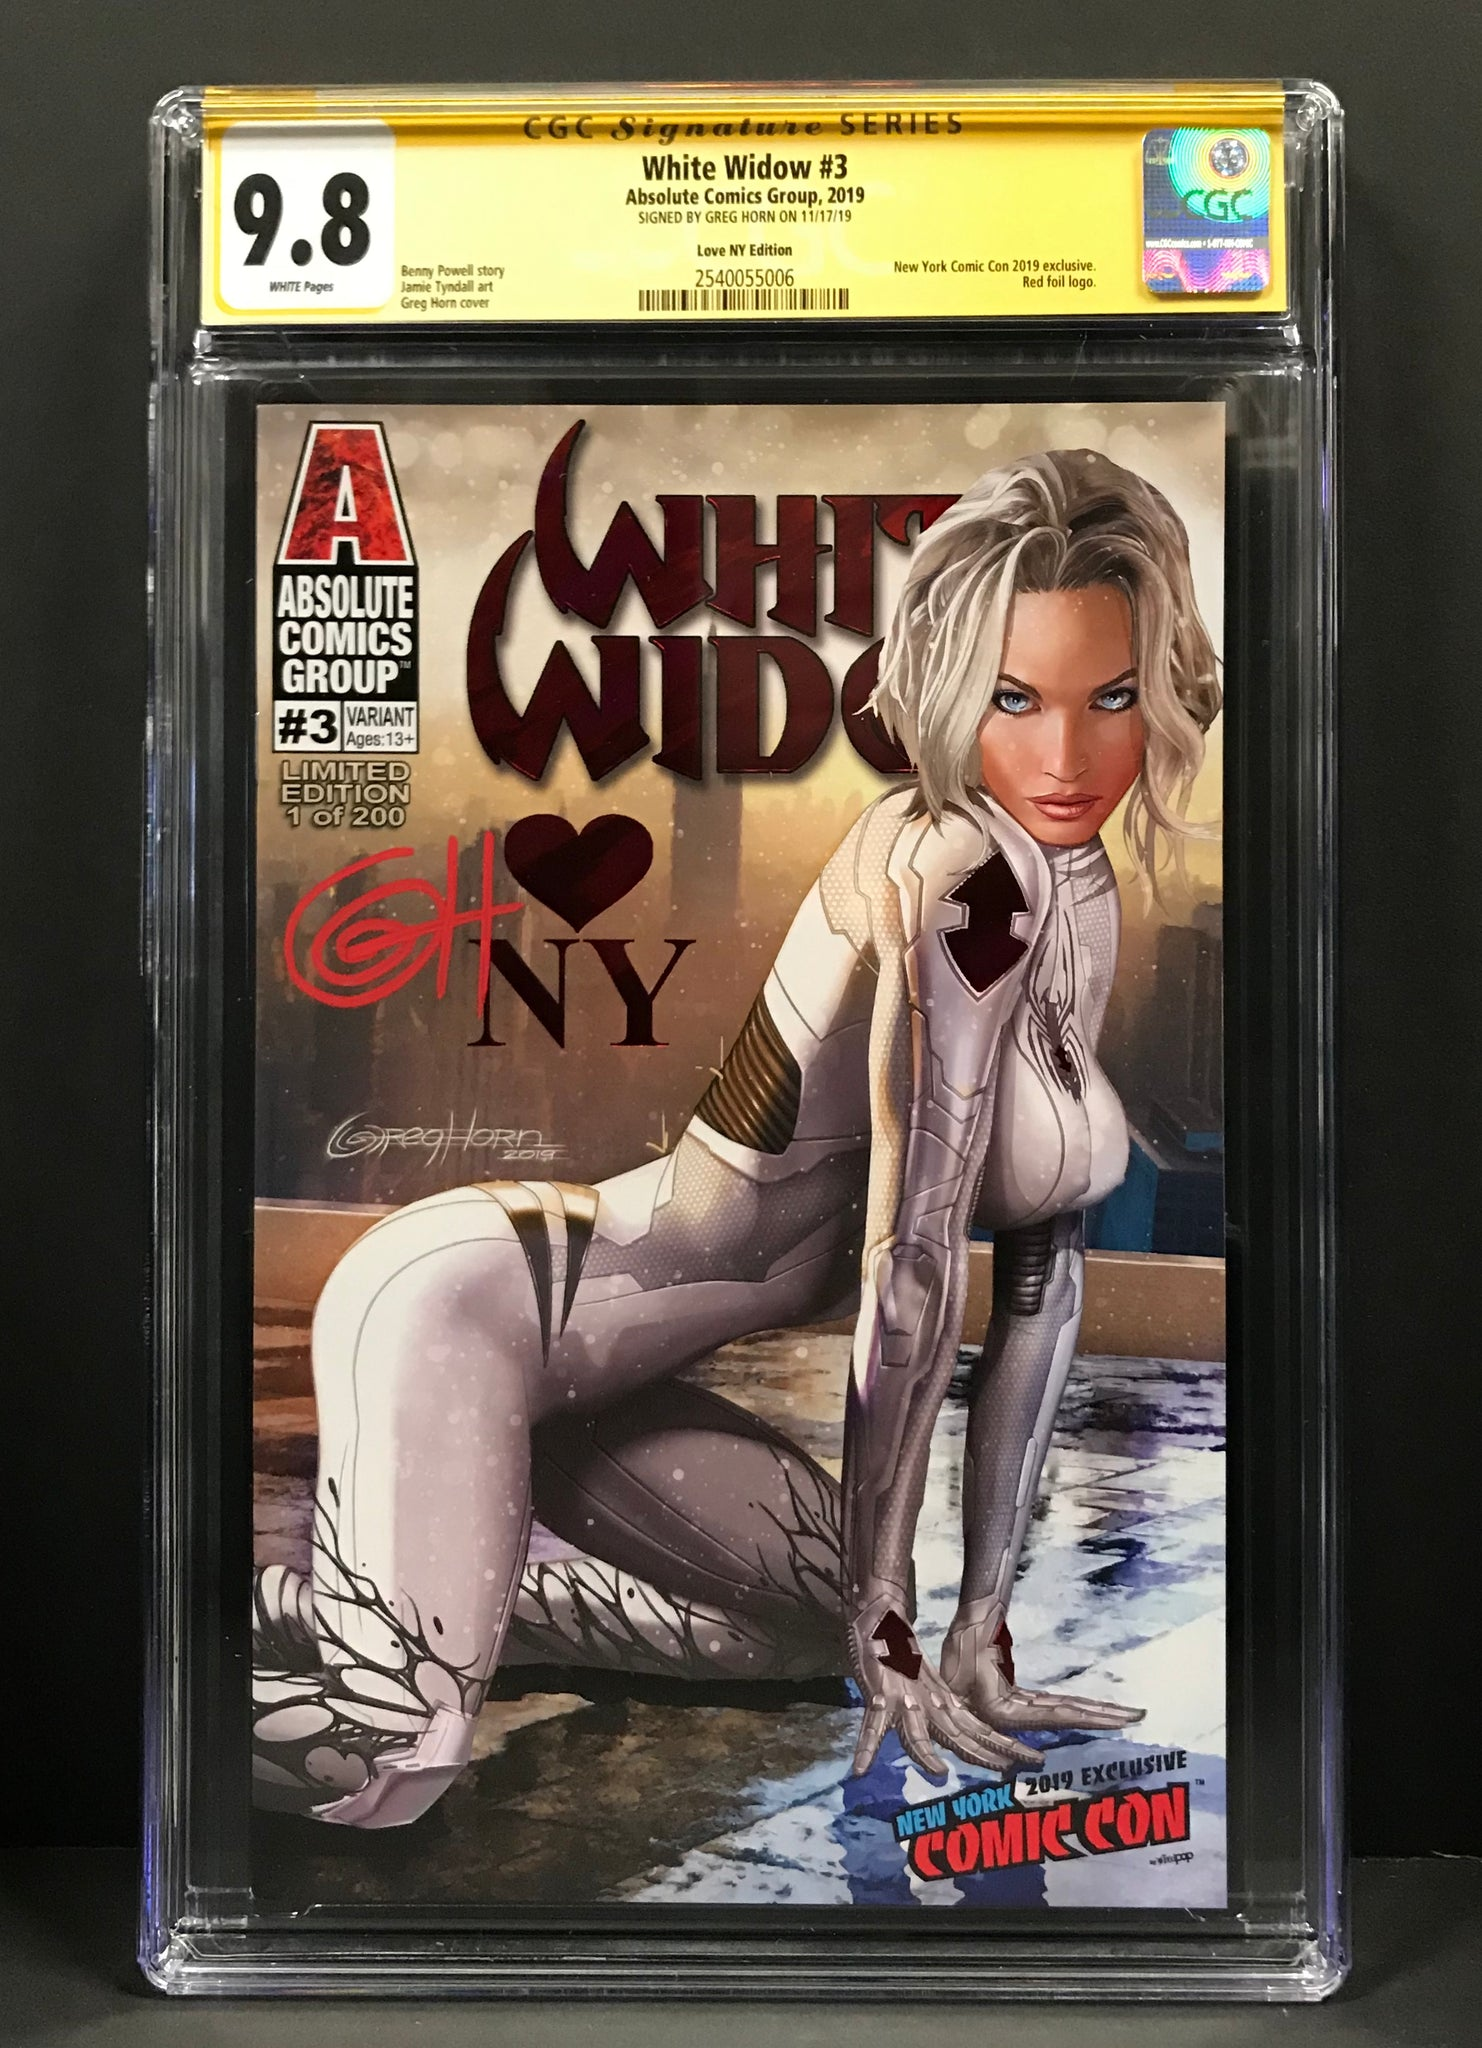 White WIdow # 3 Knowhere Toys Convention Exclusives/Greg Horn Art NYCC Trade Variant CGC